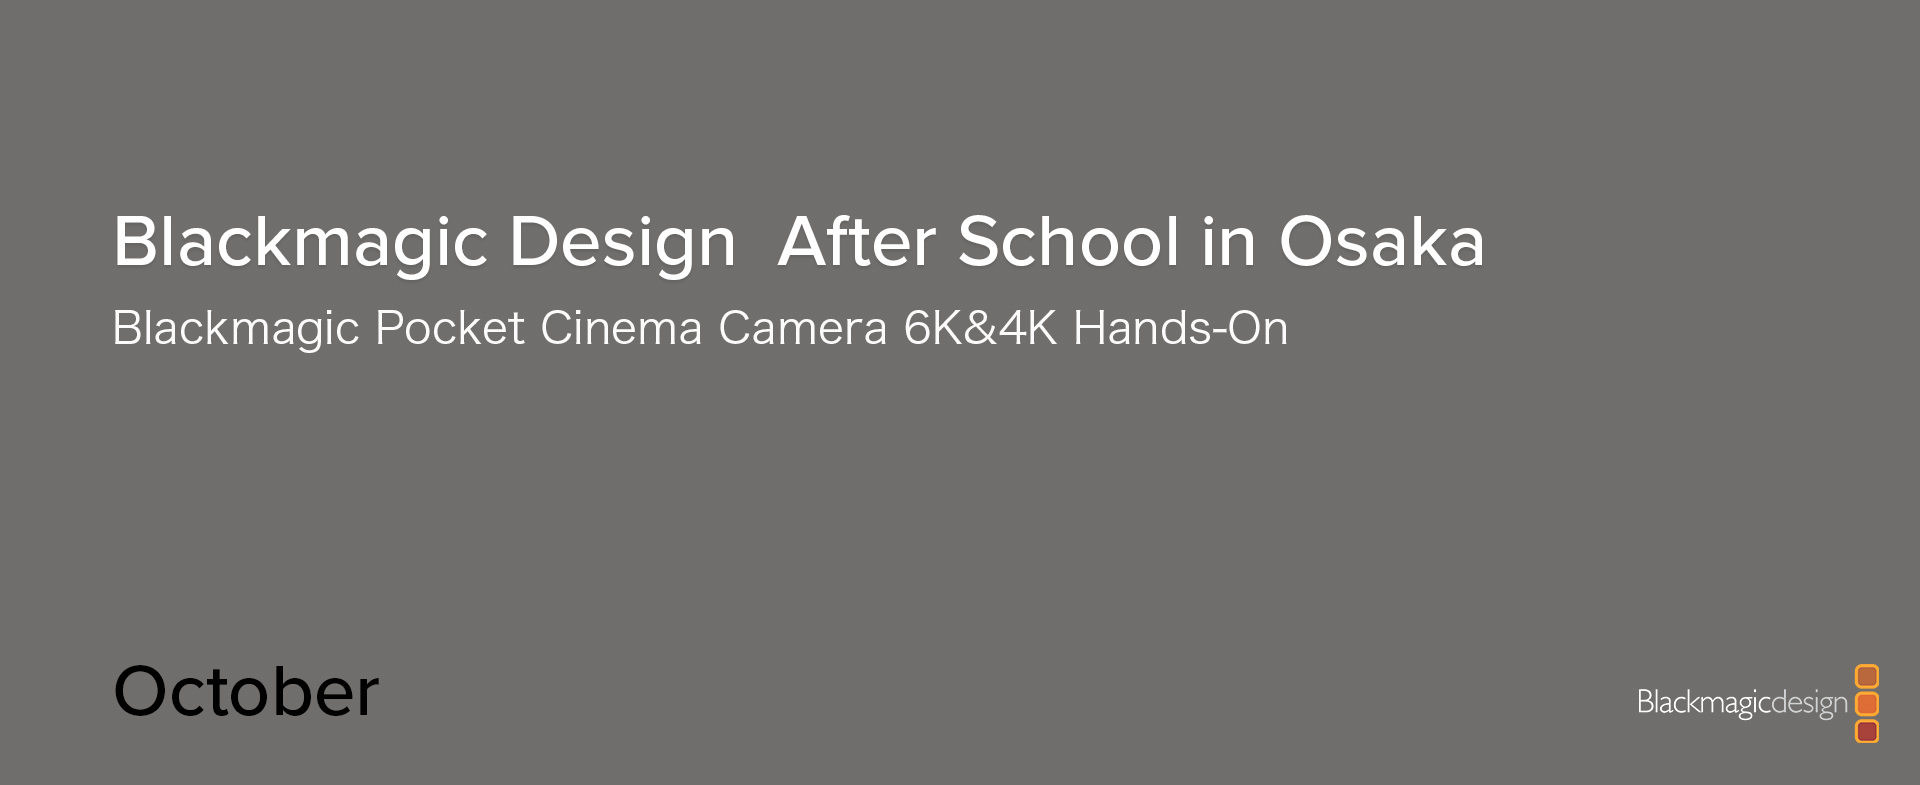 Blackmagic Design  After School in Osaka